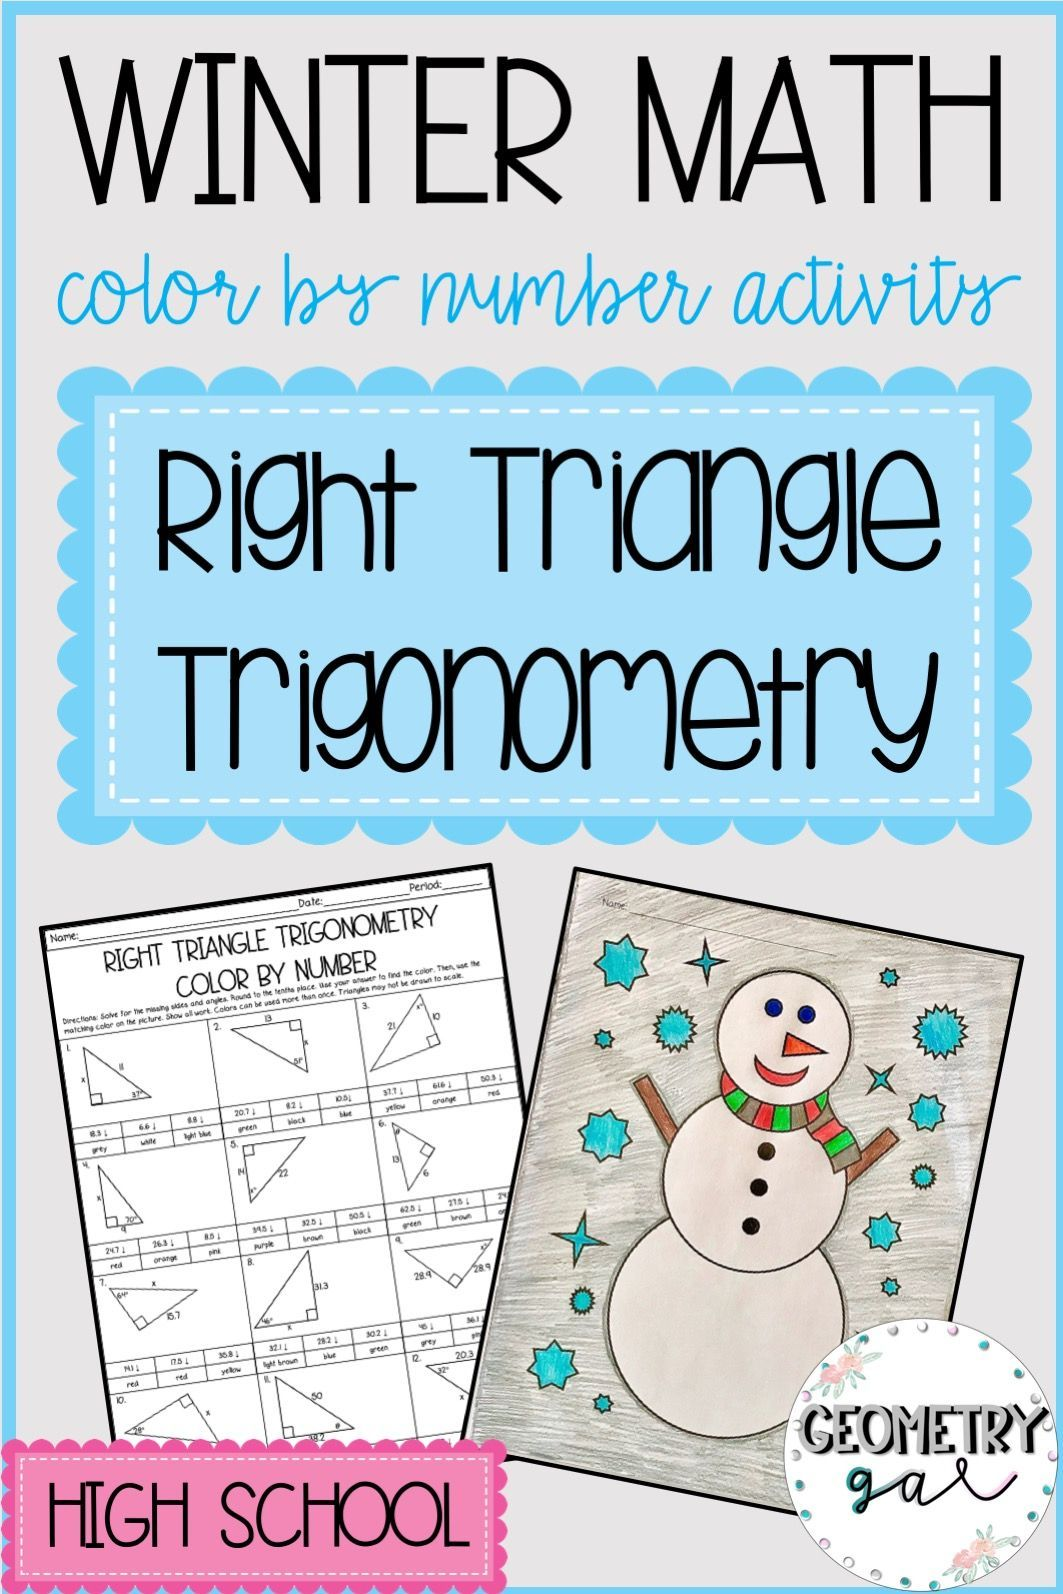 High School Geometry Holiday Activity Great For Christmas Or Any Winter Holiday Geometry High School Geometry Activities High School Holiday Math Activities